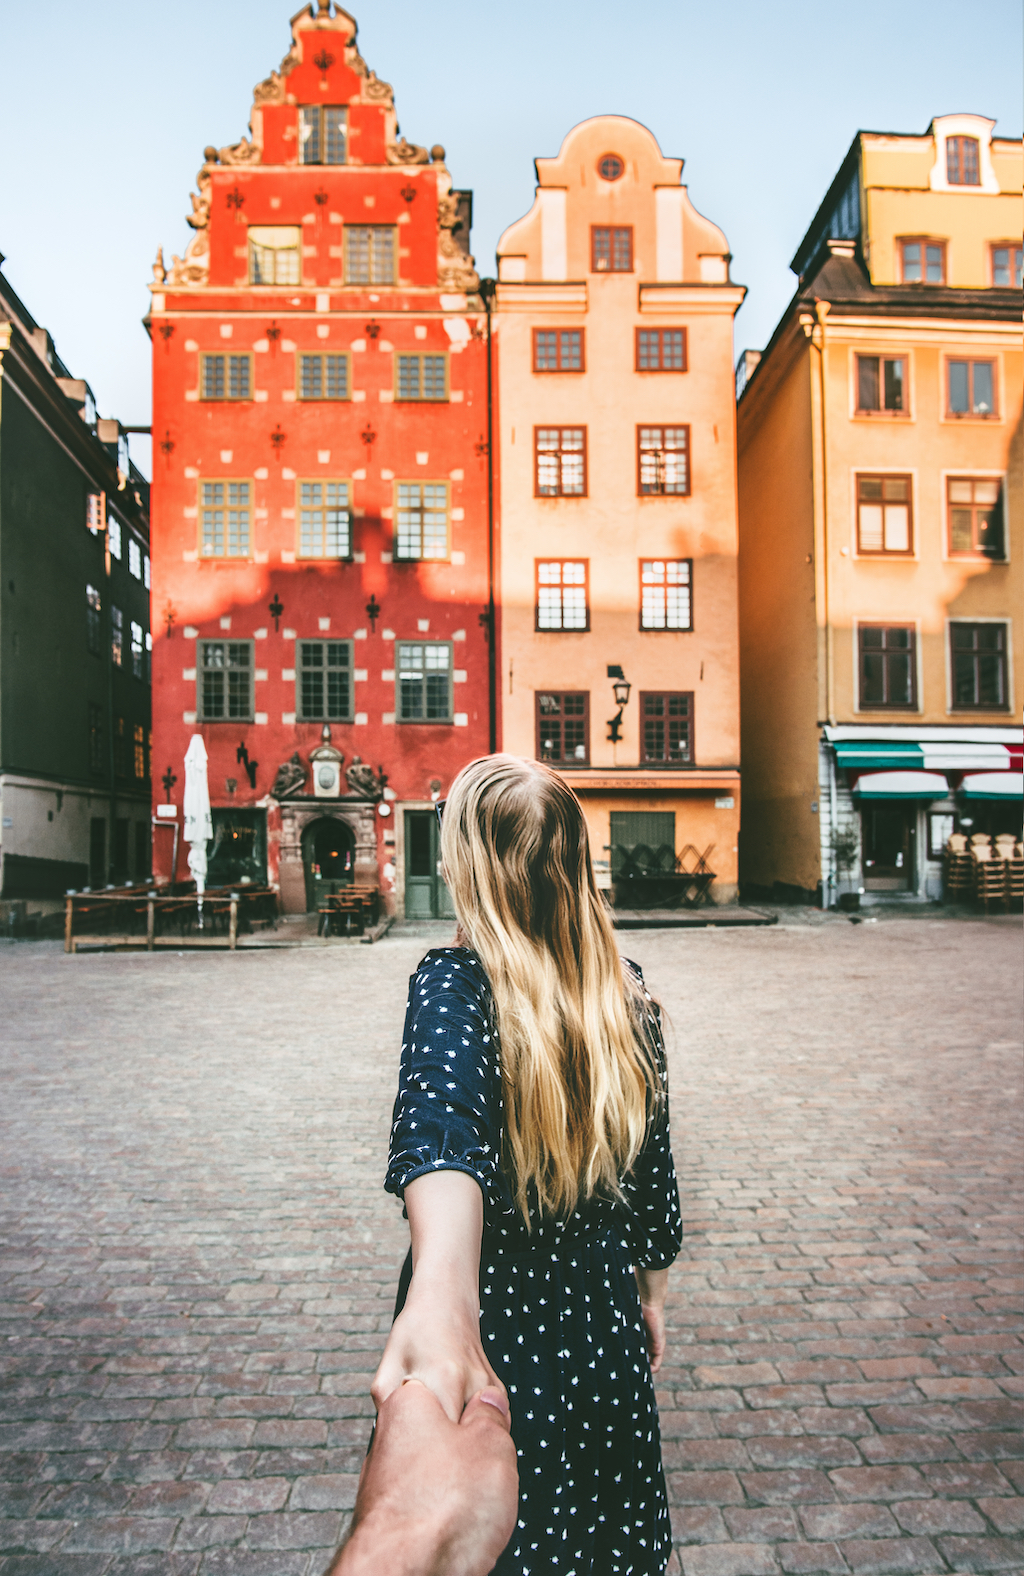 Travel Images - Girl Walking to Building